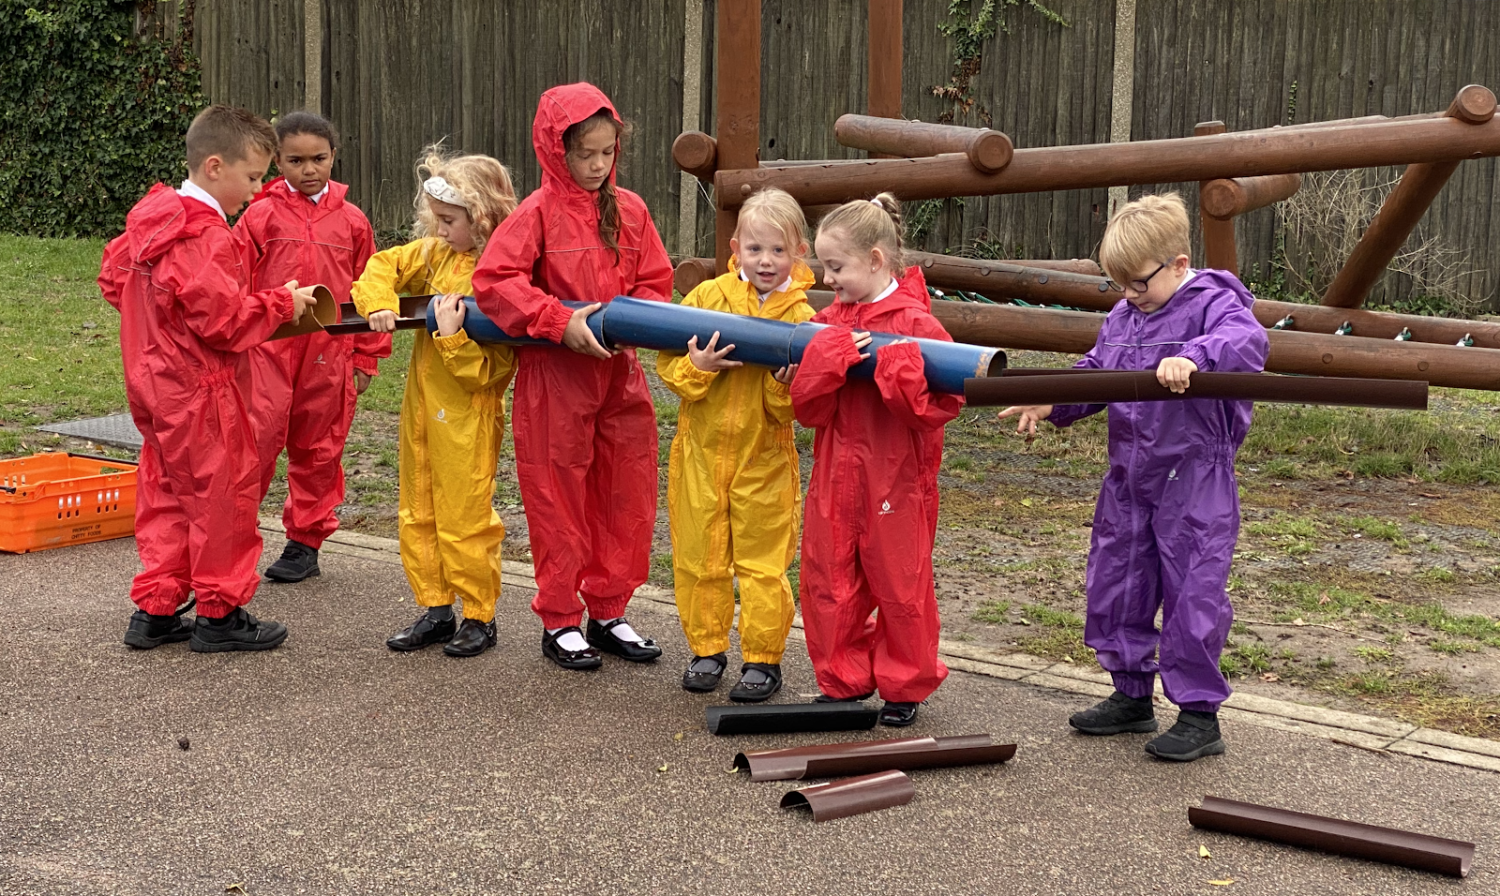 A group of students are shown working together to connect a large pipe.